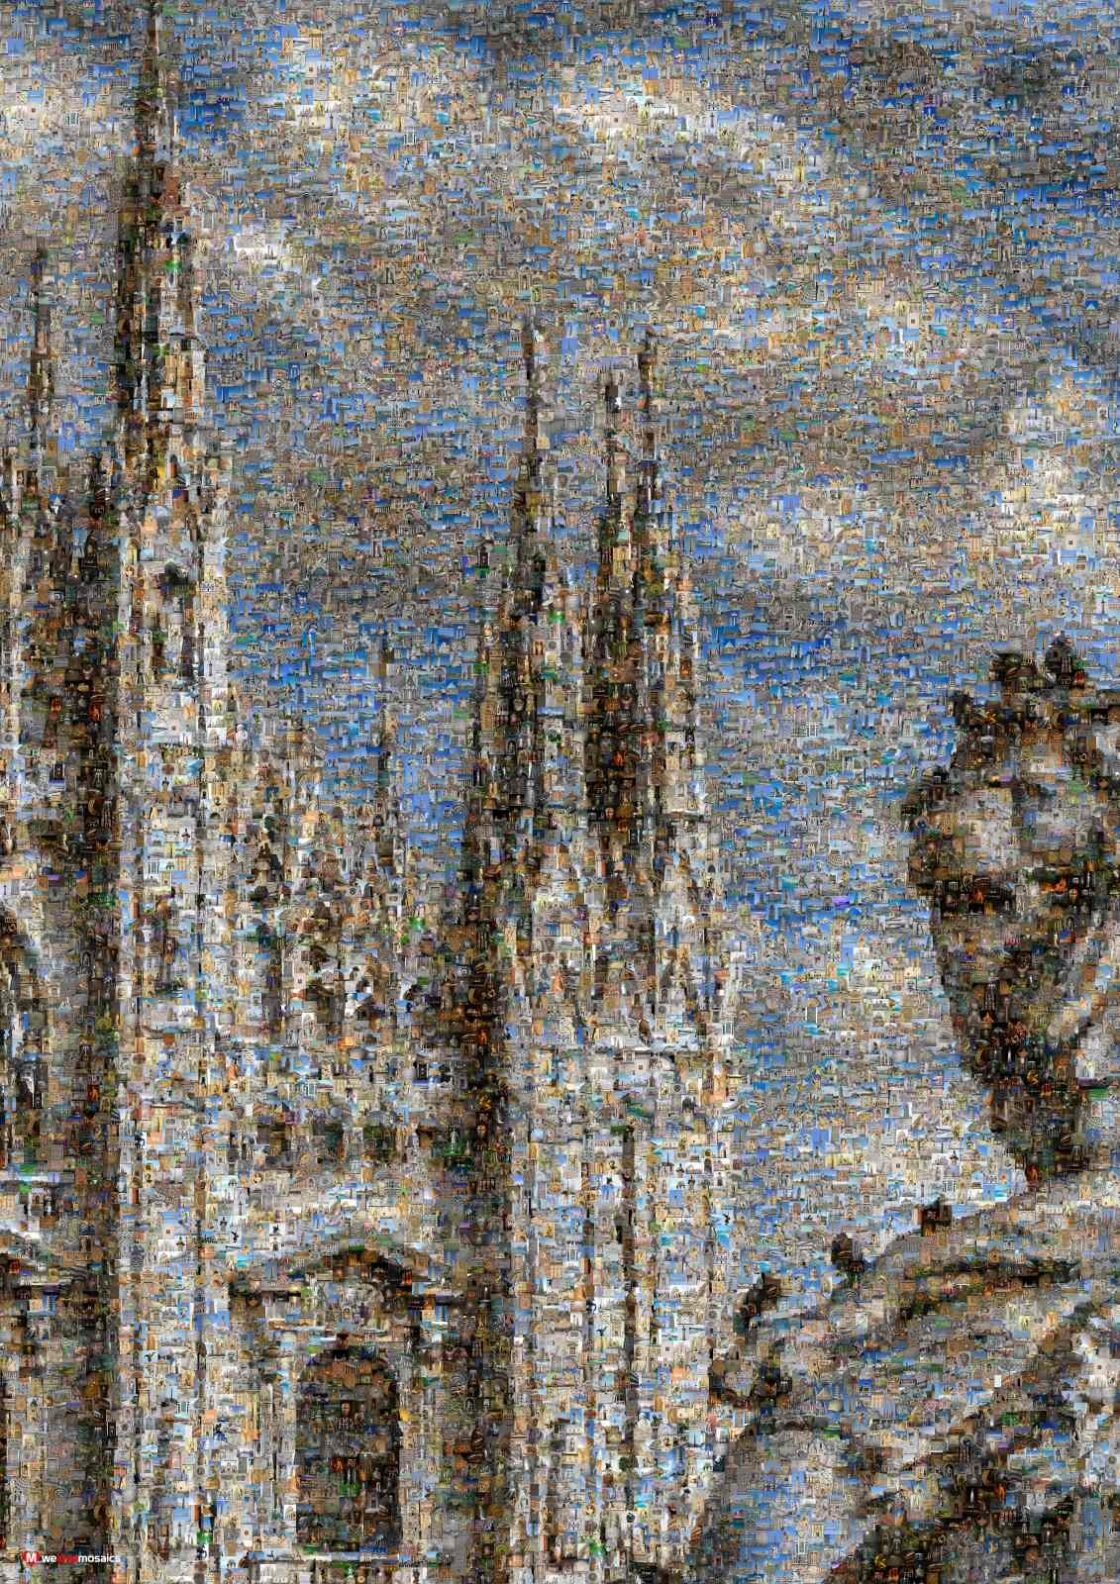 A beautiful church. Construction work on the Duomo of Milan probably began in 1386.